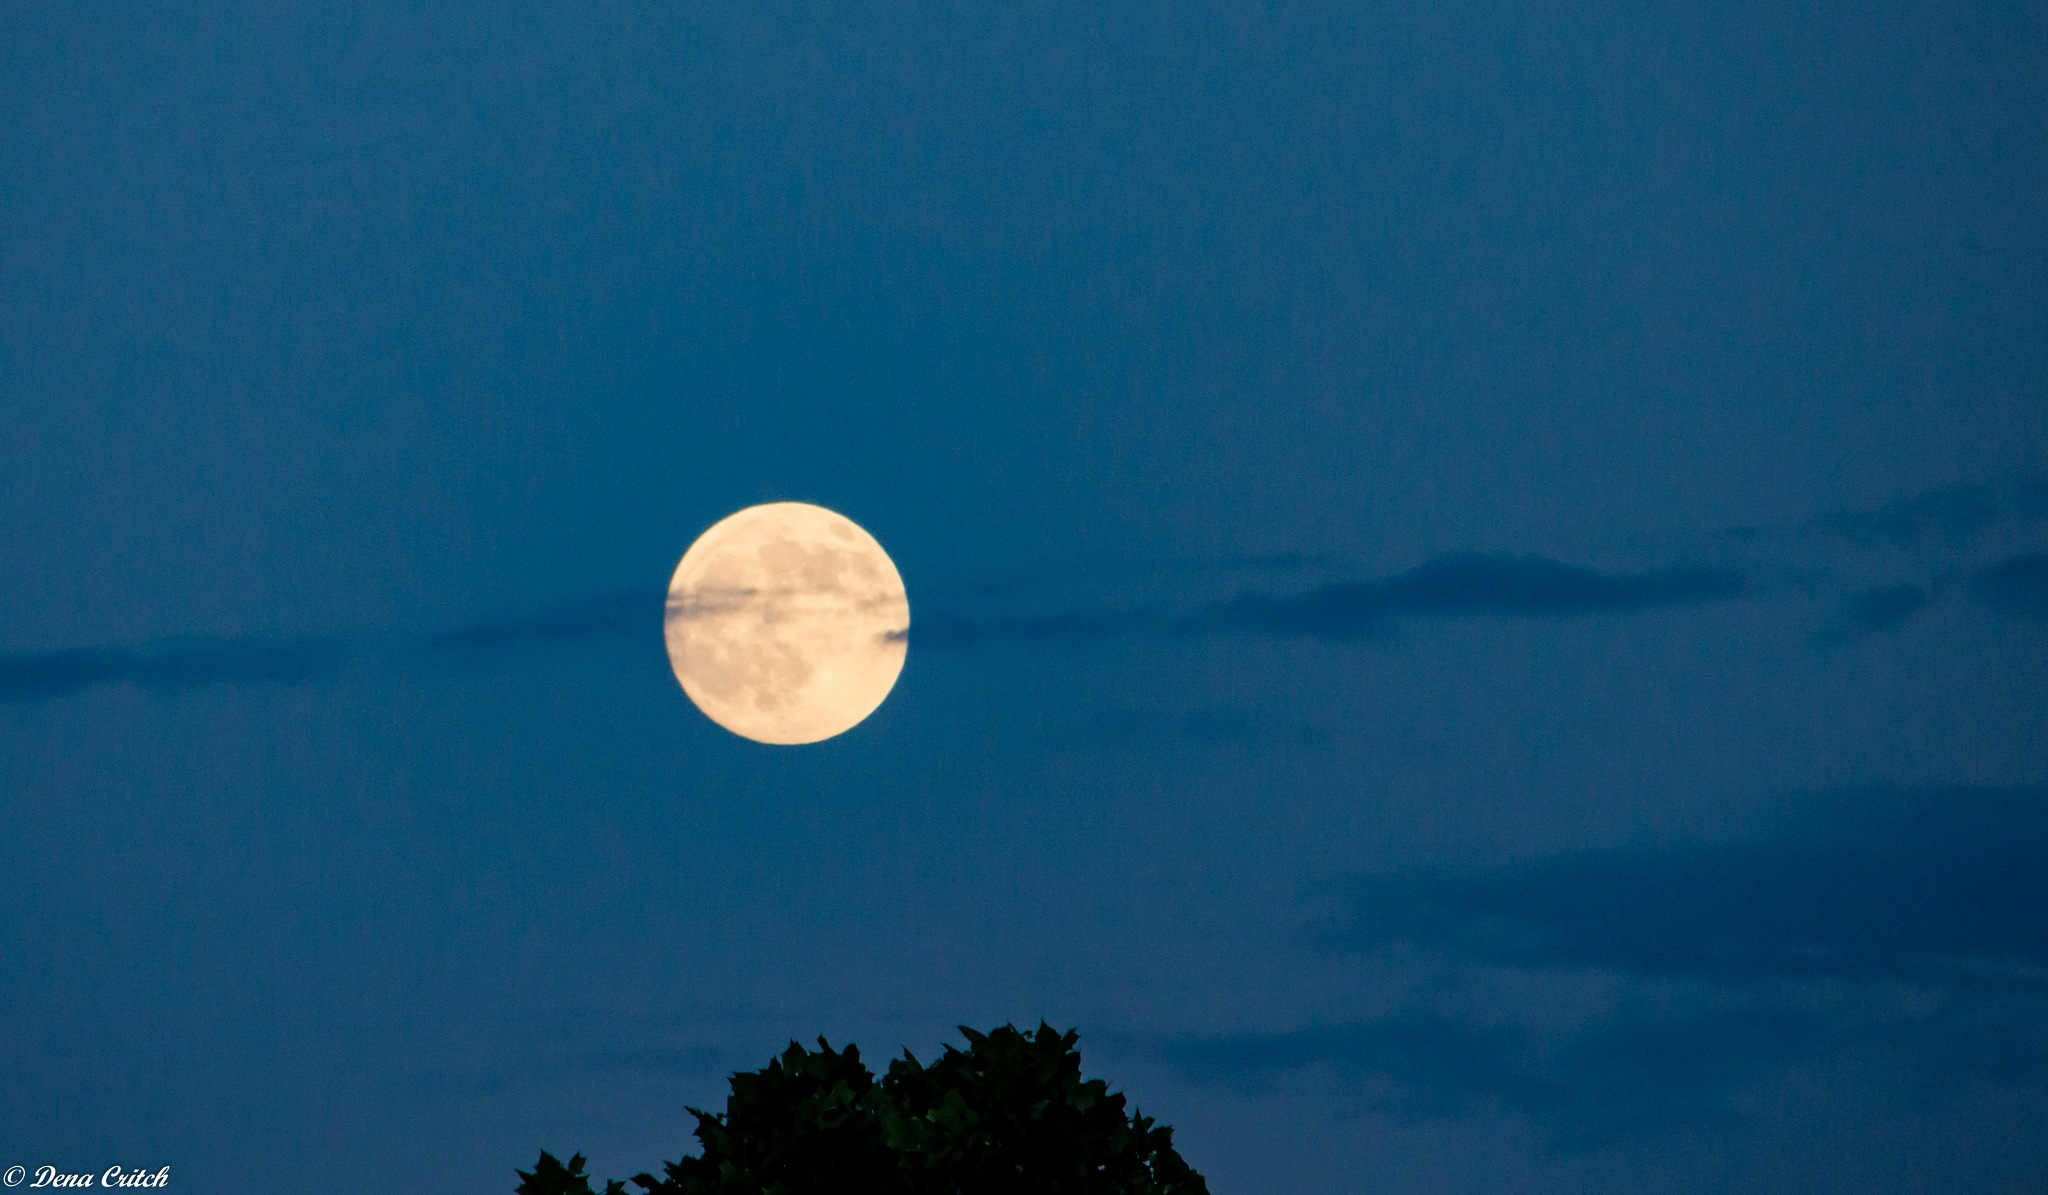 Moonlight & Clouds by dena.critch